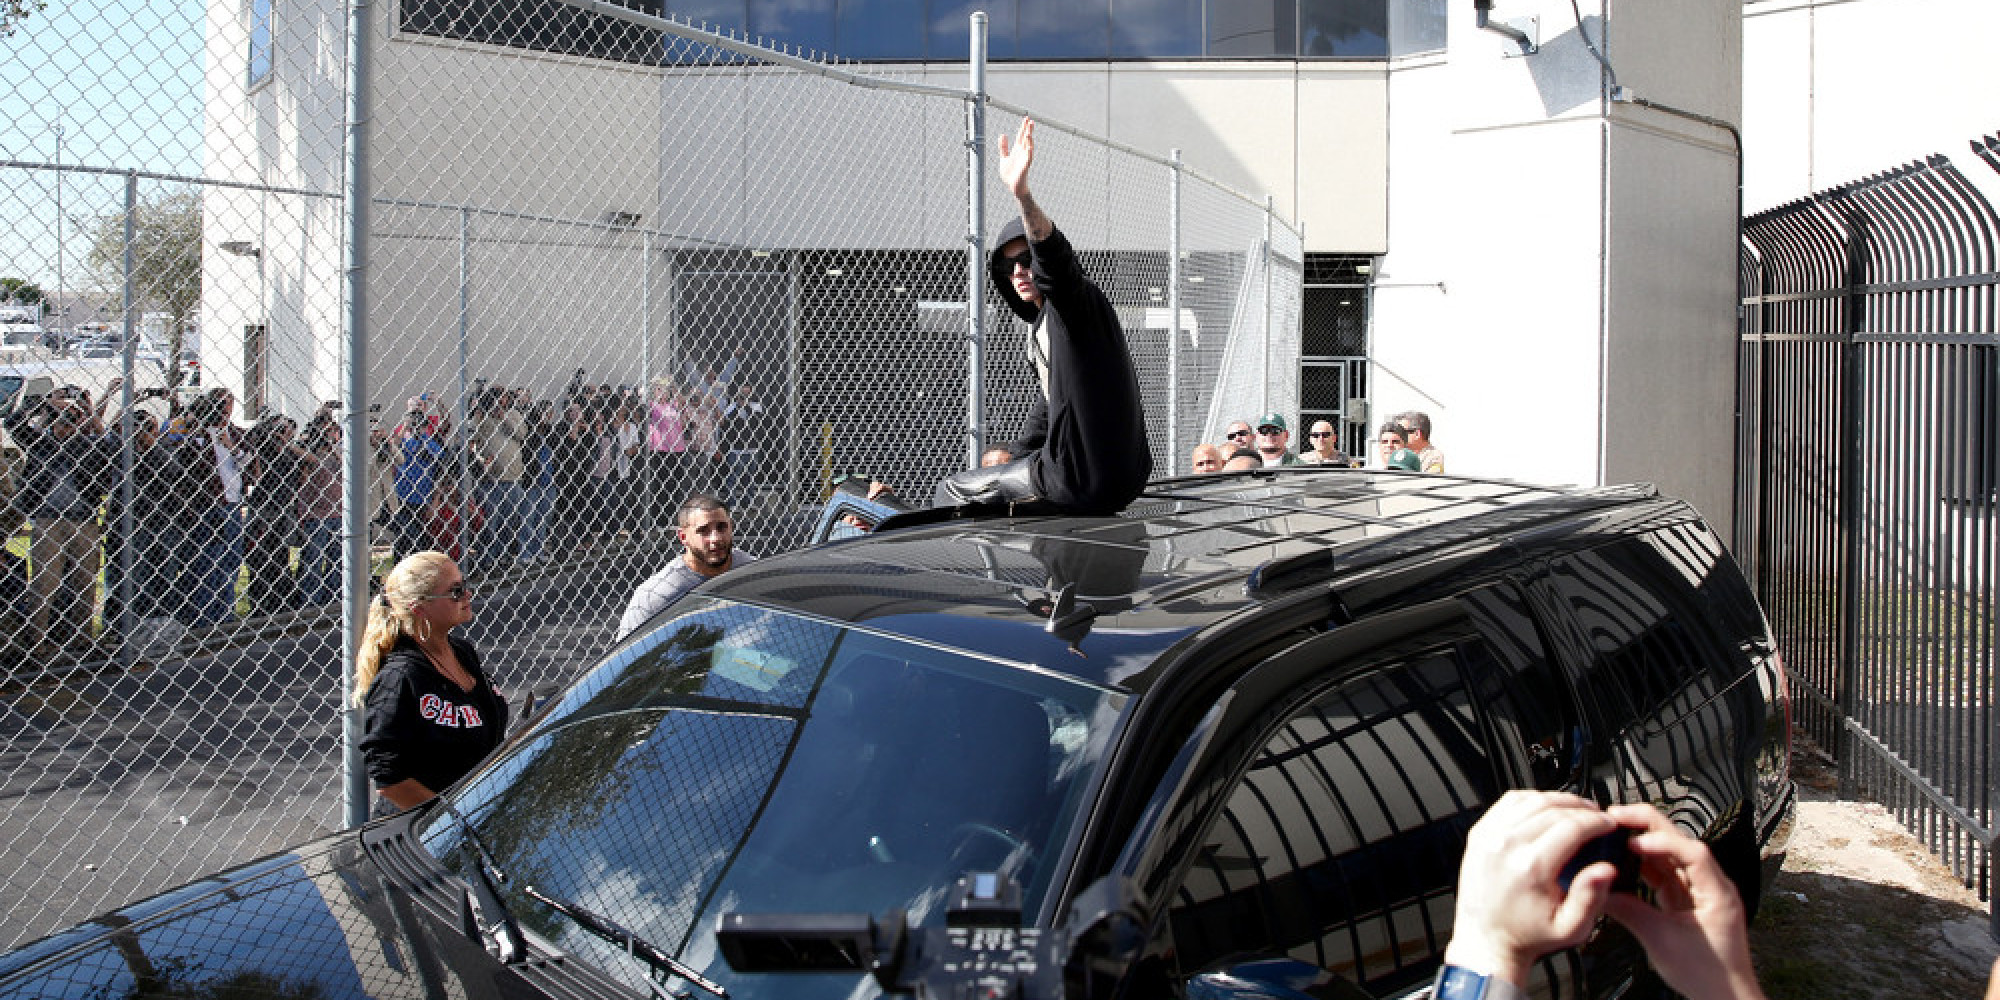 Beyonce Twins Photo >> Justin Bieber Leaves Jail, Waves To Fans Outside Of Correctional Facility   HuffPost